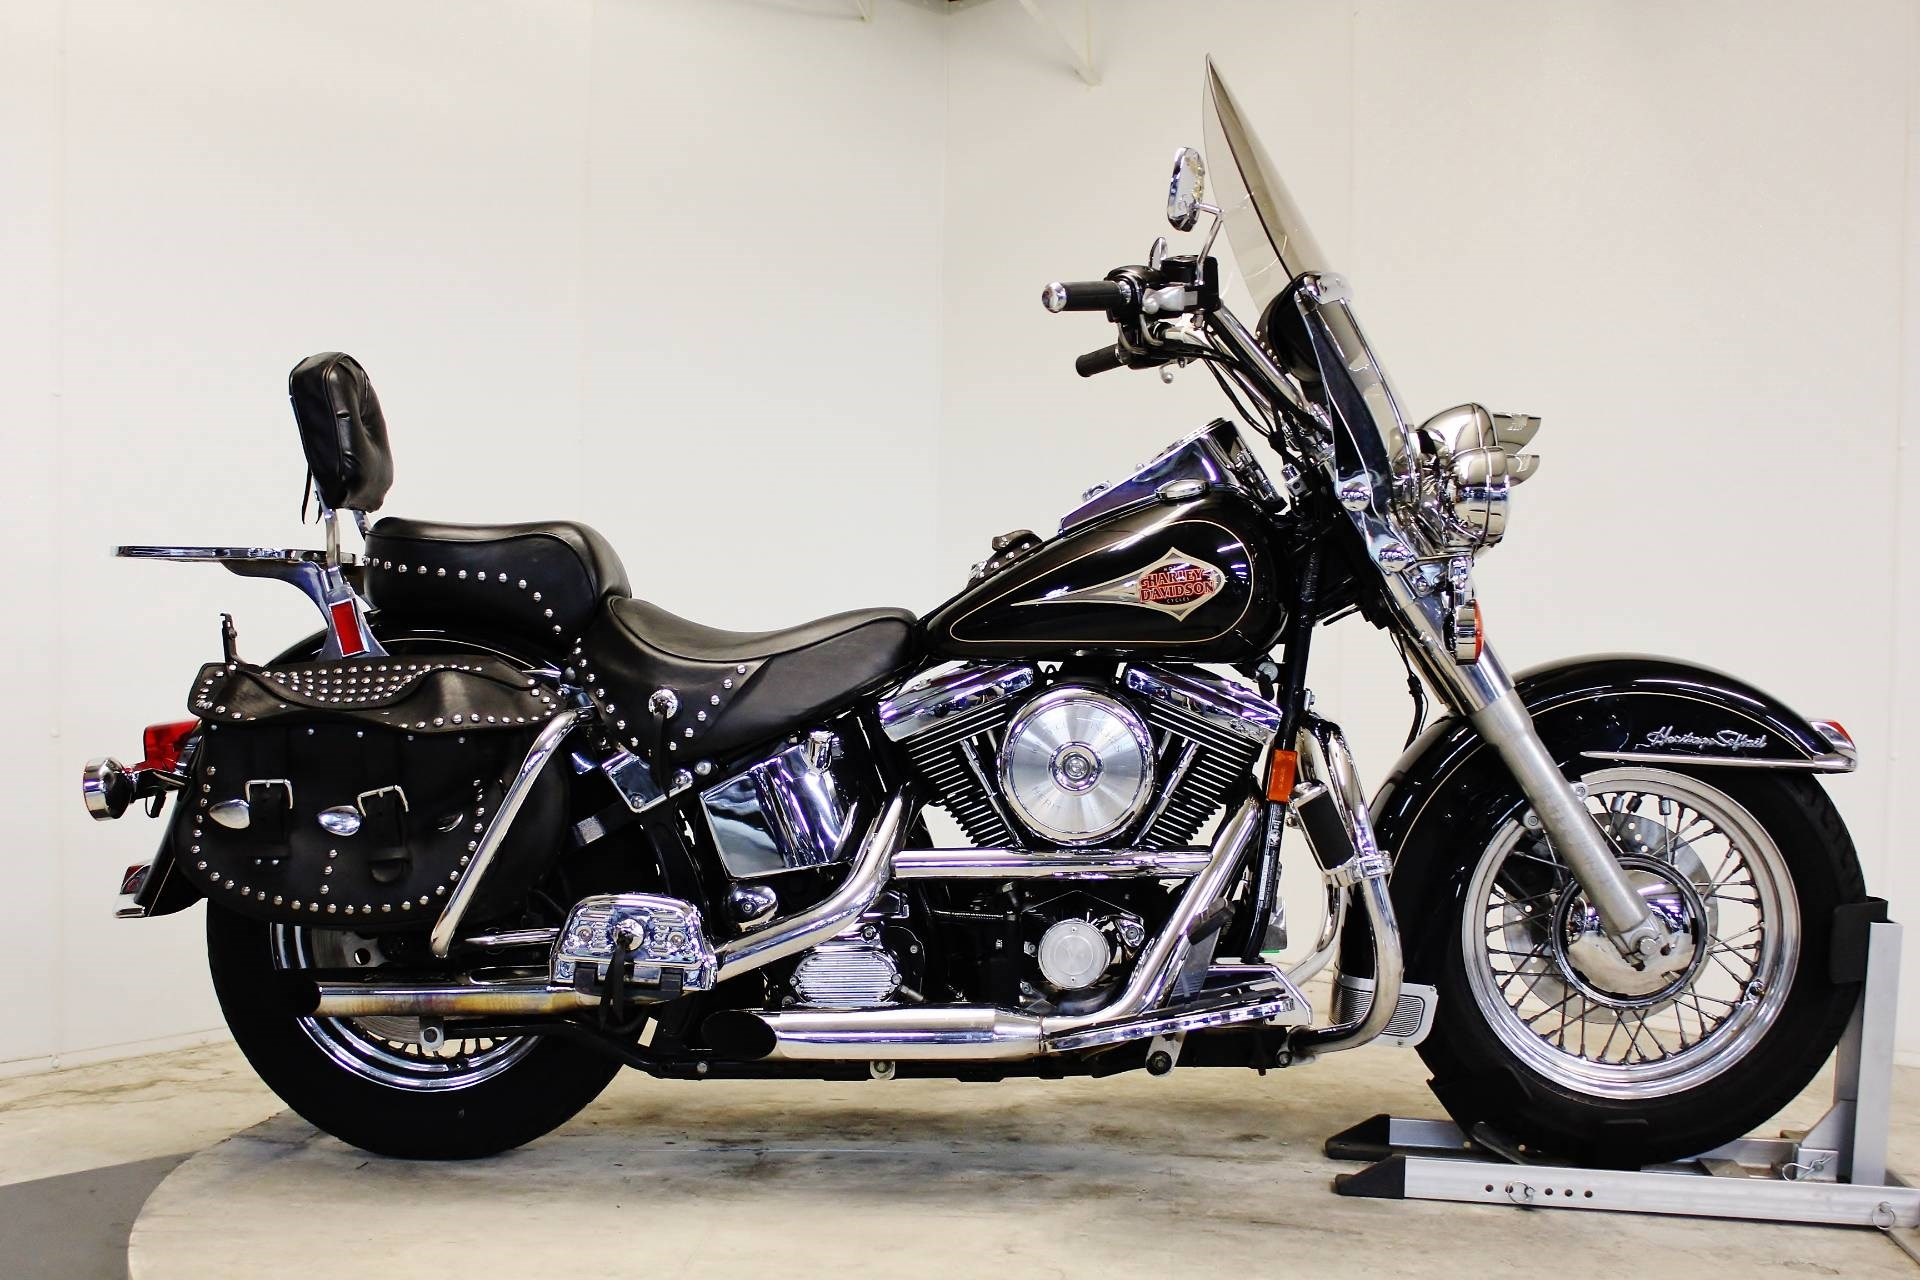 1998 harley davidson flstc heritage softail classic. Black Bedroom Furniture Sets. Home Design Ideas